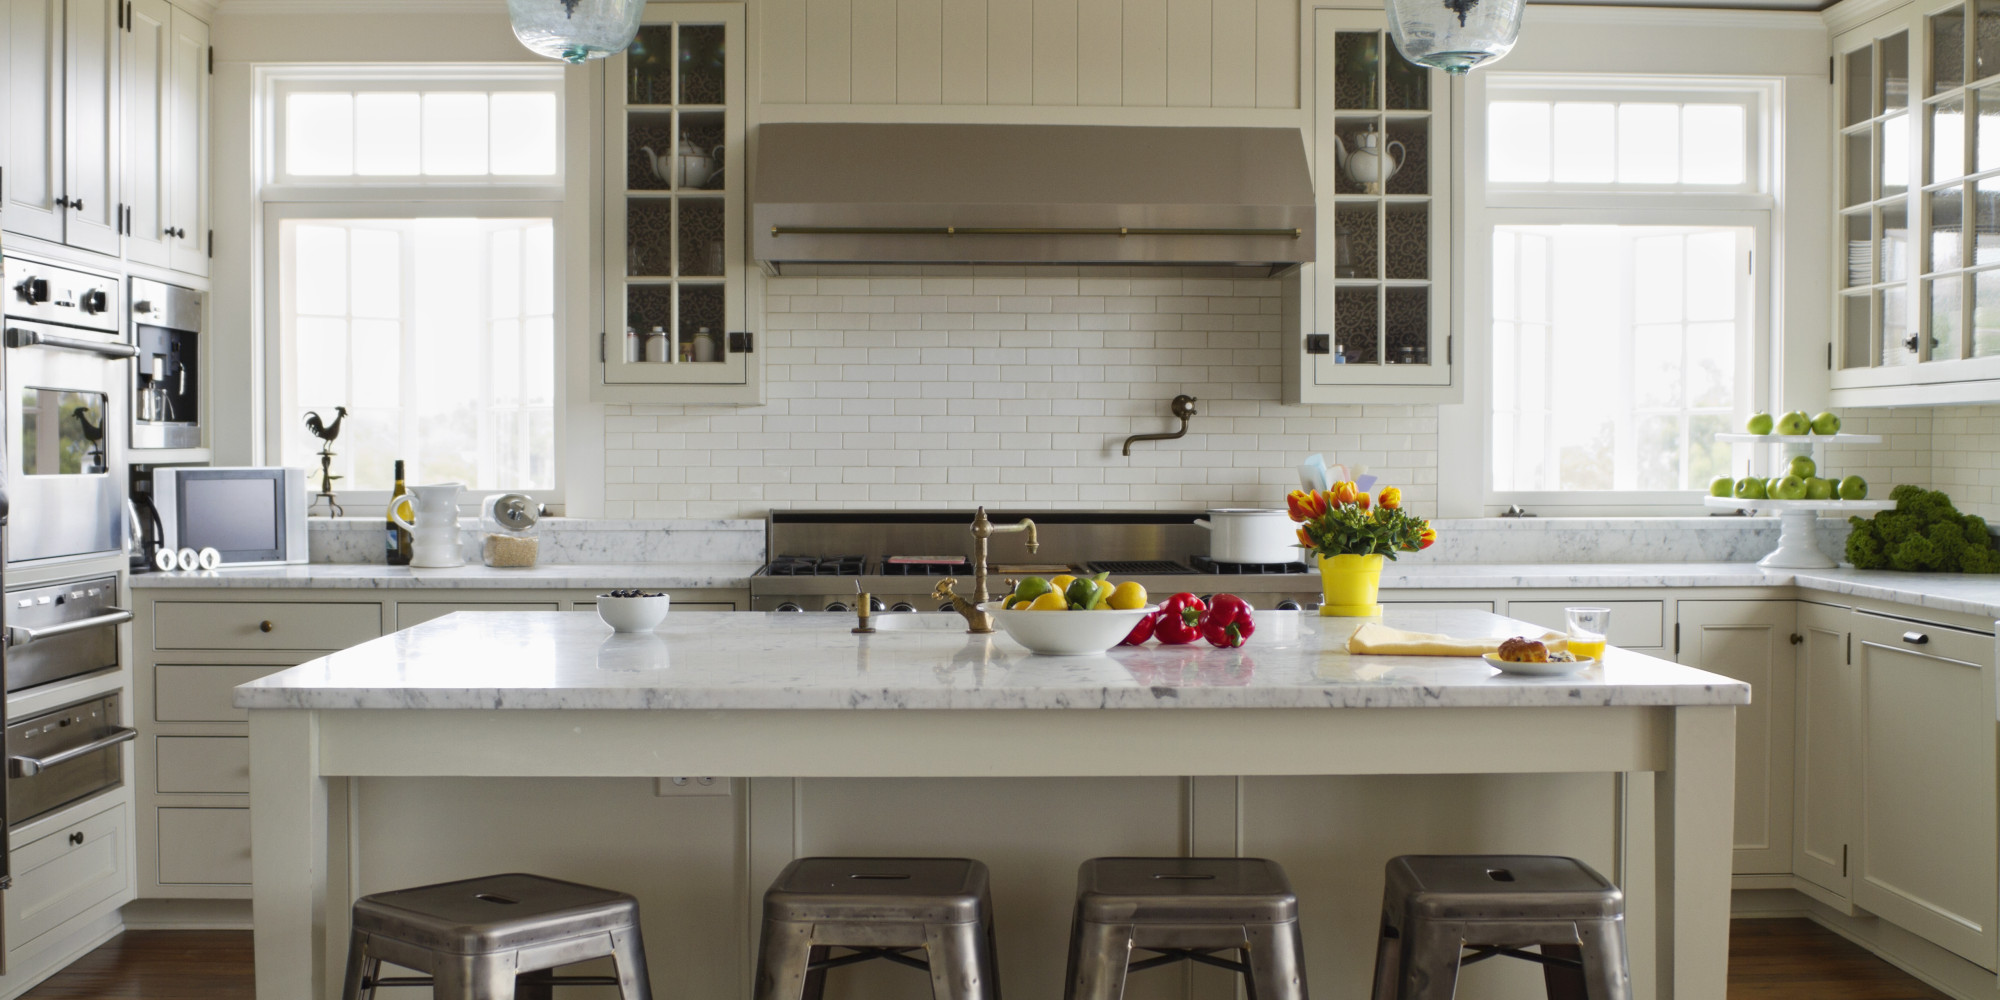 The 3 Biggest Kitchen Trends Of 2014 Might Surprise You (PHOTOS) | HuffPost